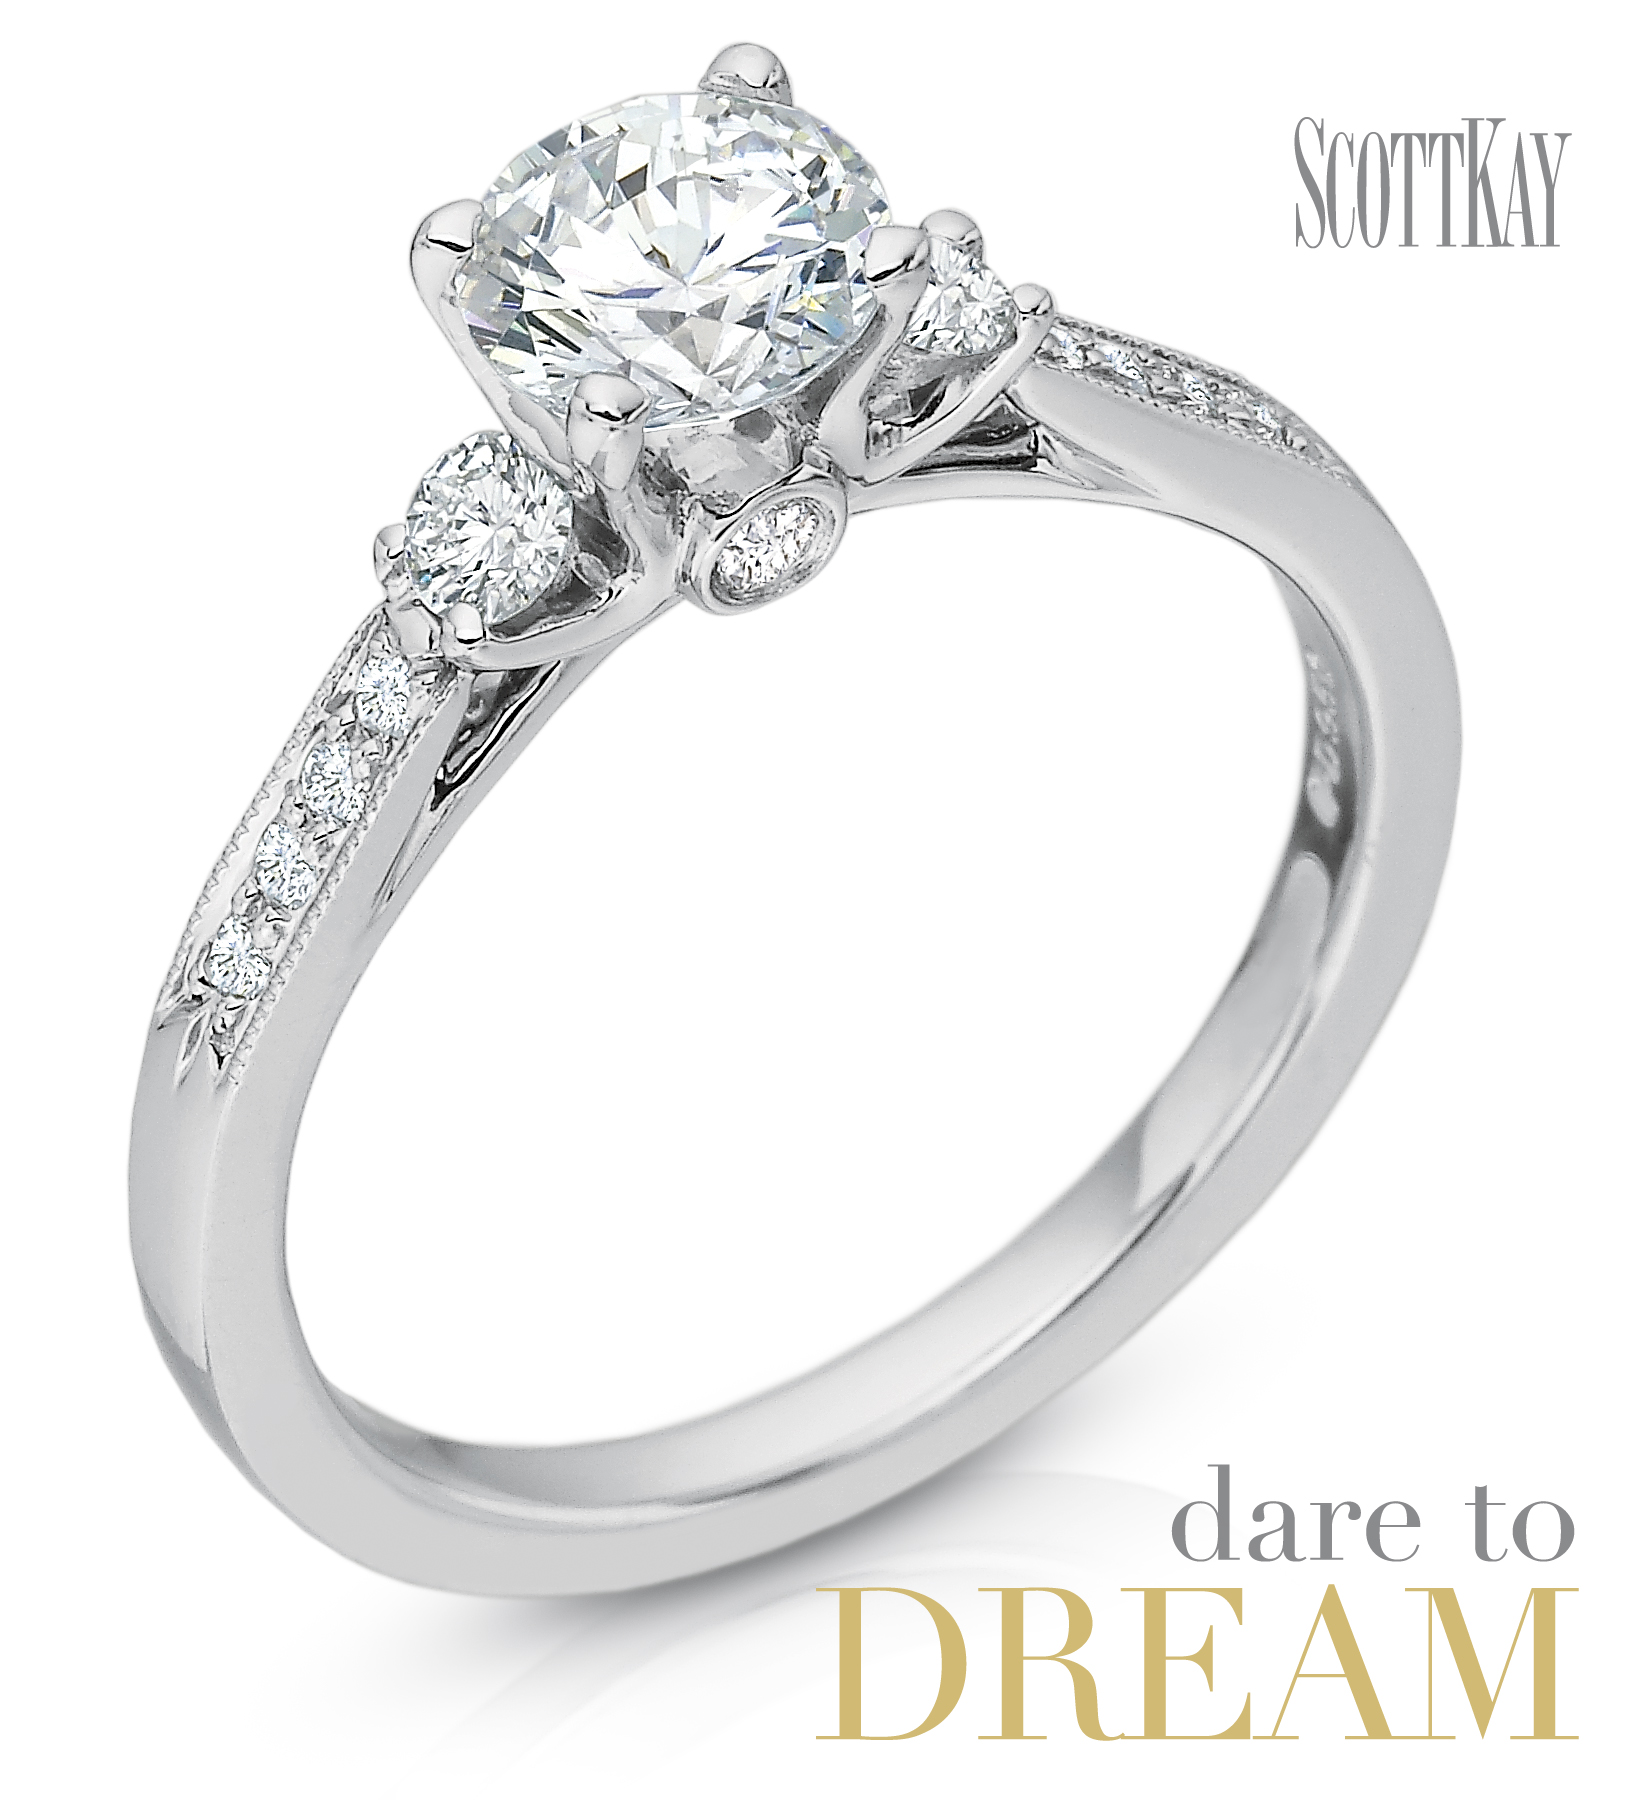 Family Co Jewelers Scott Kay B1602r310: Lost For Words Over Scott Kay Engagement Ring